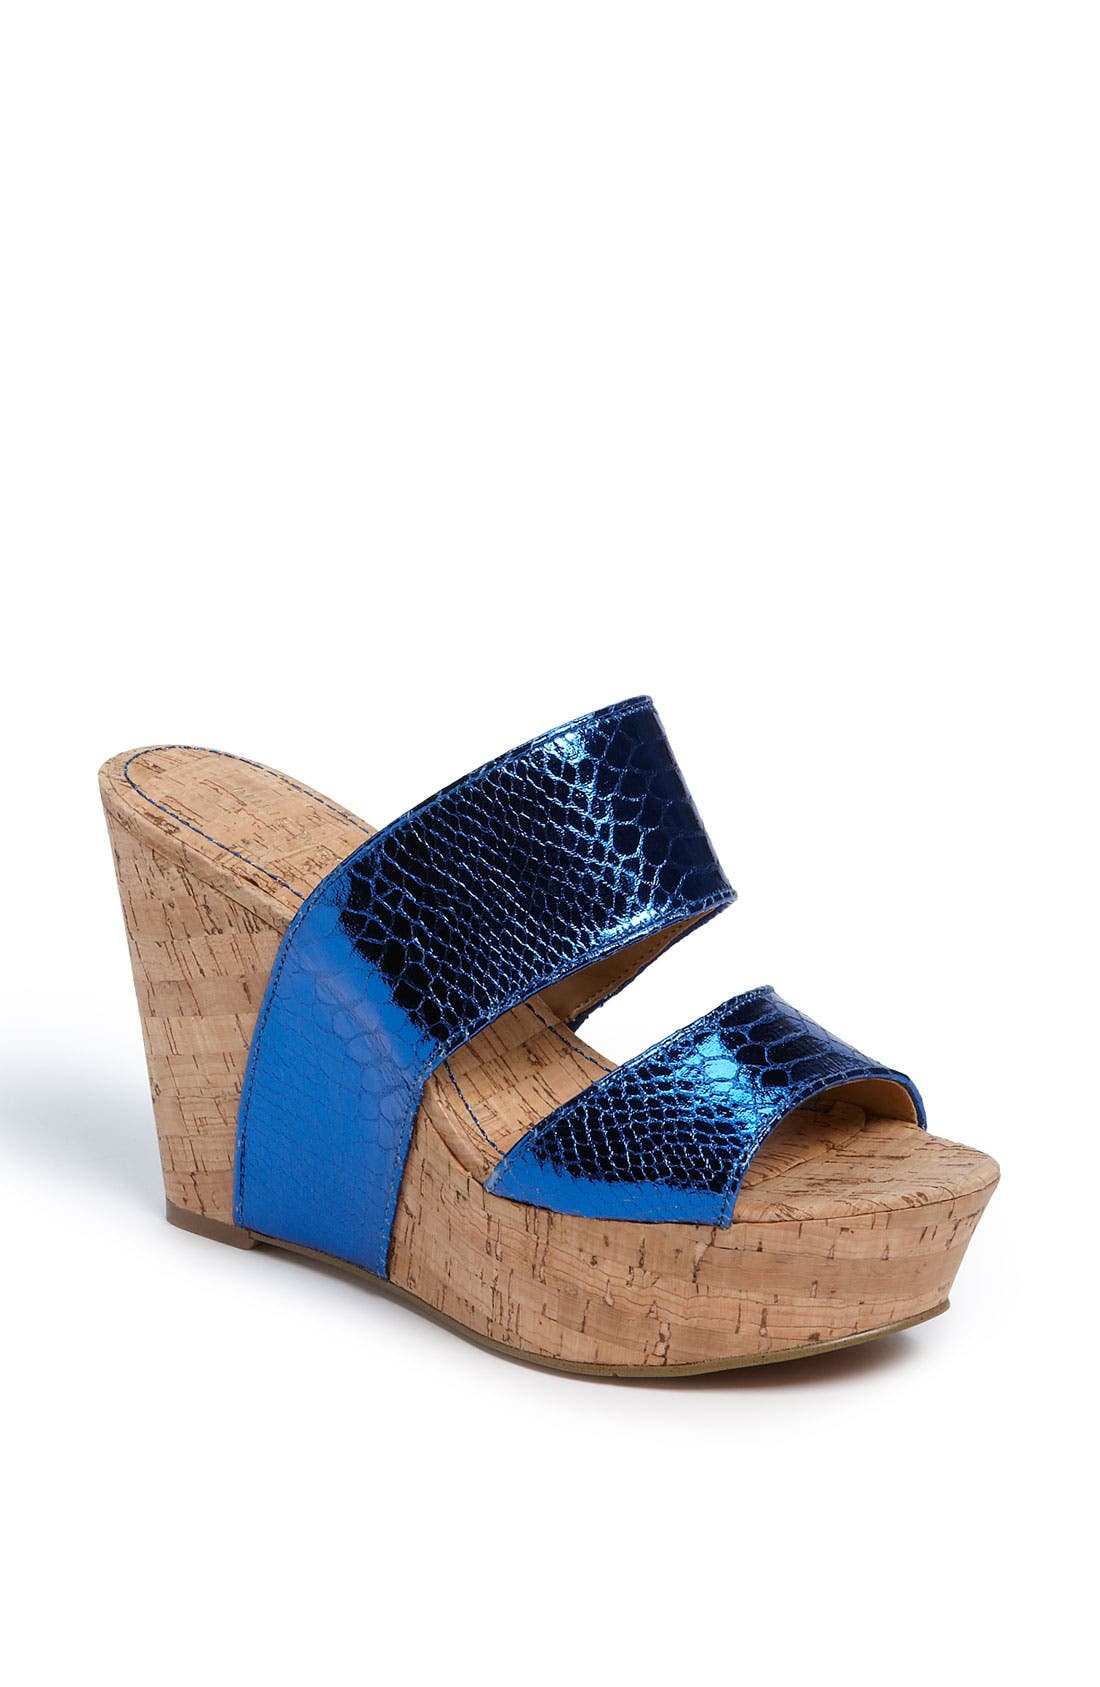 Alternate Image 1 Selected - Nine West 'Larysa' Wedge Sandal